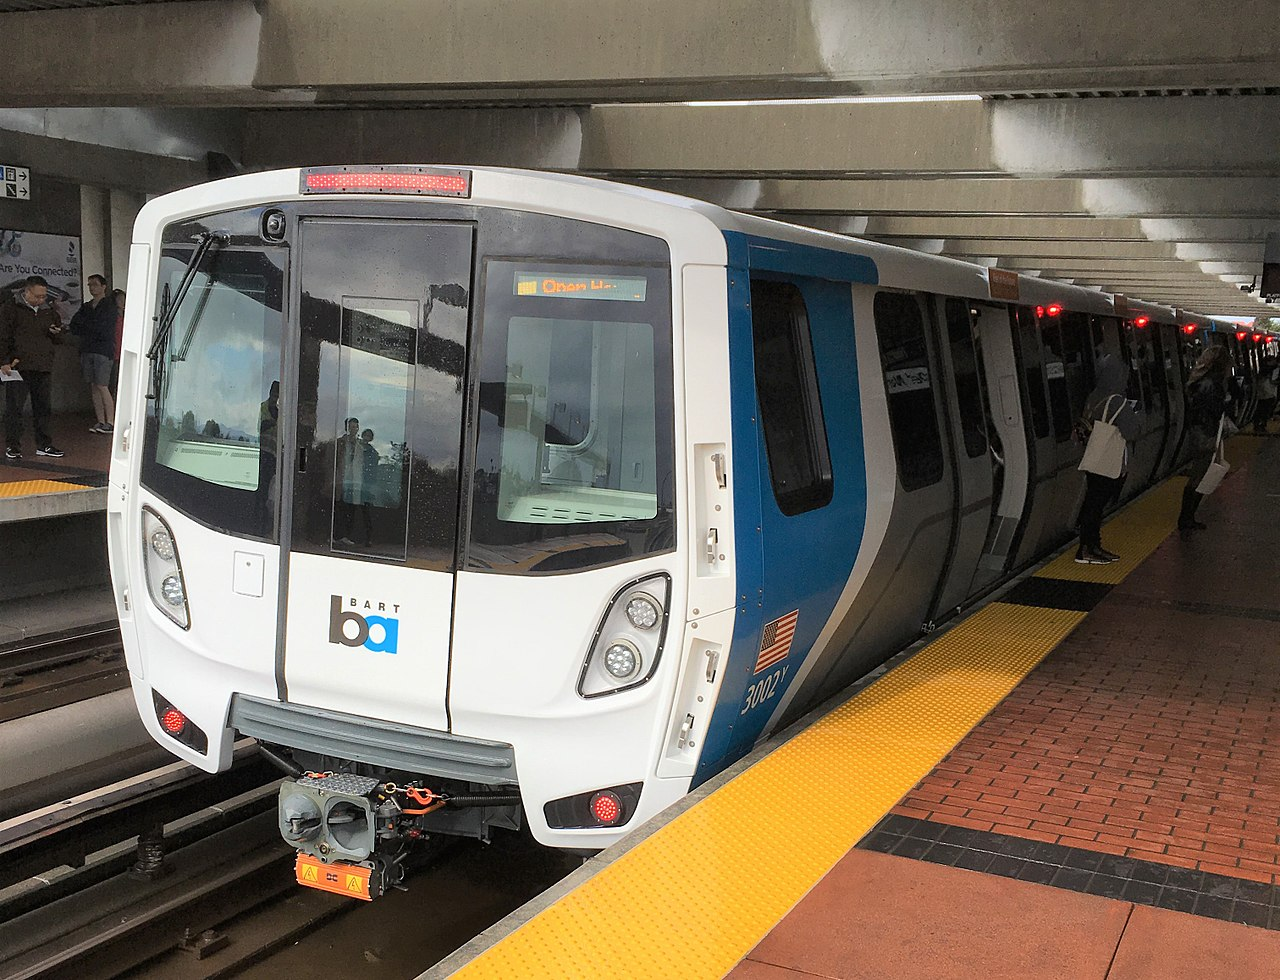 BART operators say new cars have potentially deadly design flaw